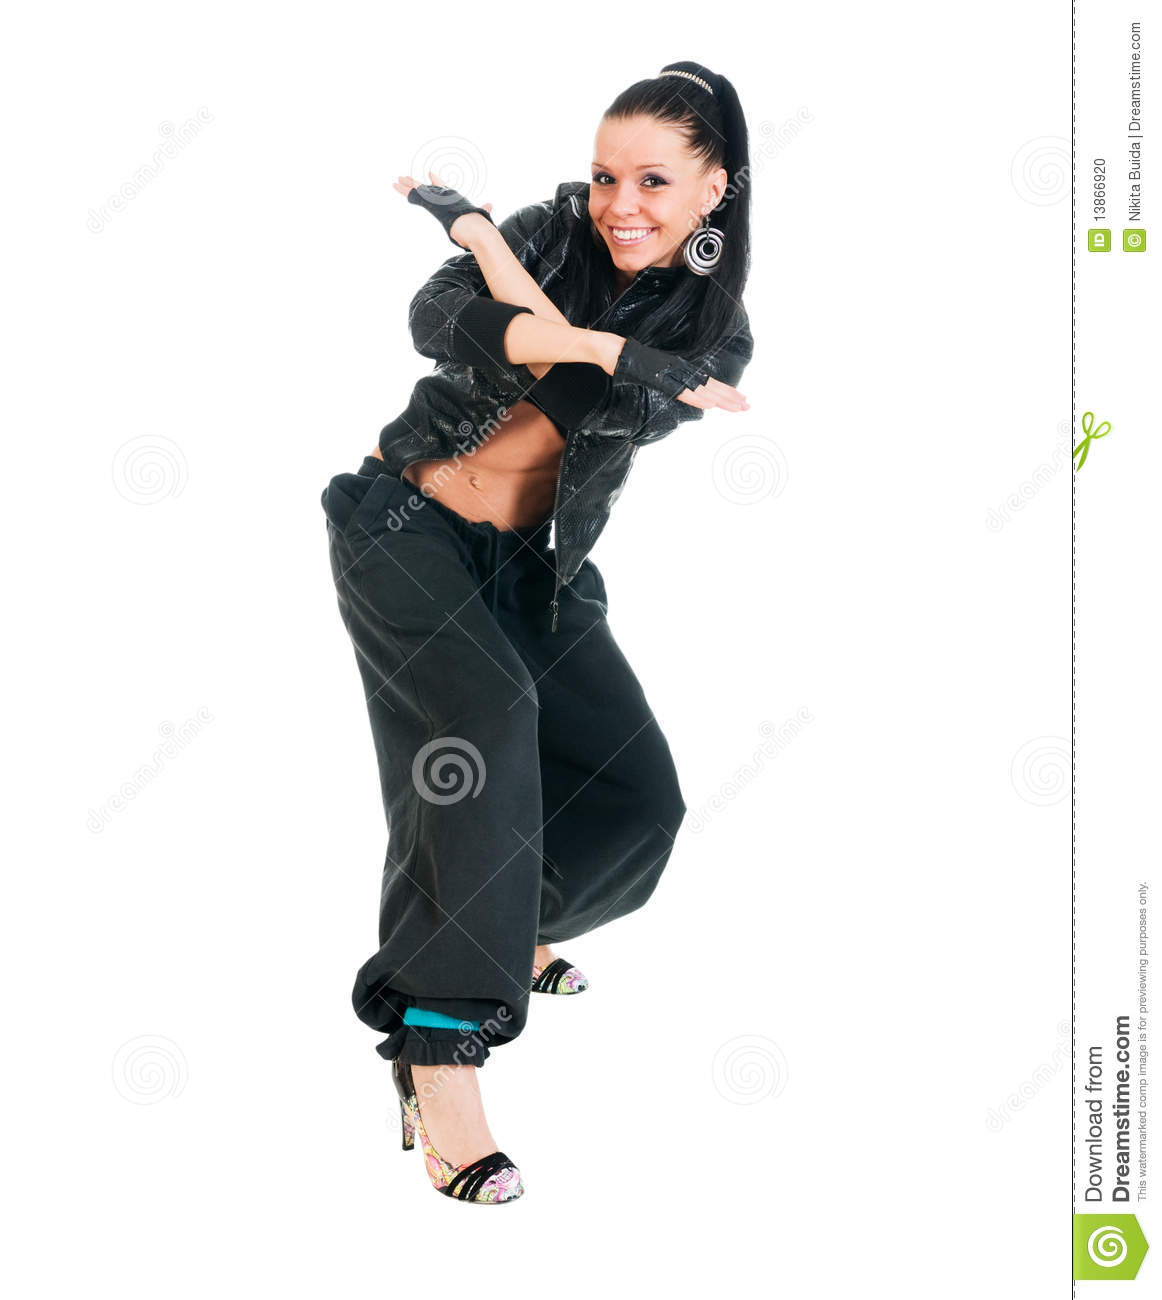 Active Hip-hop Dancer On White Stock Photo - Image: 13866920